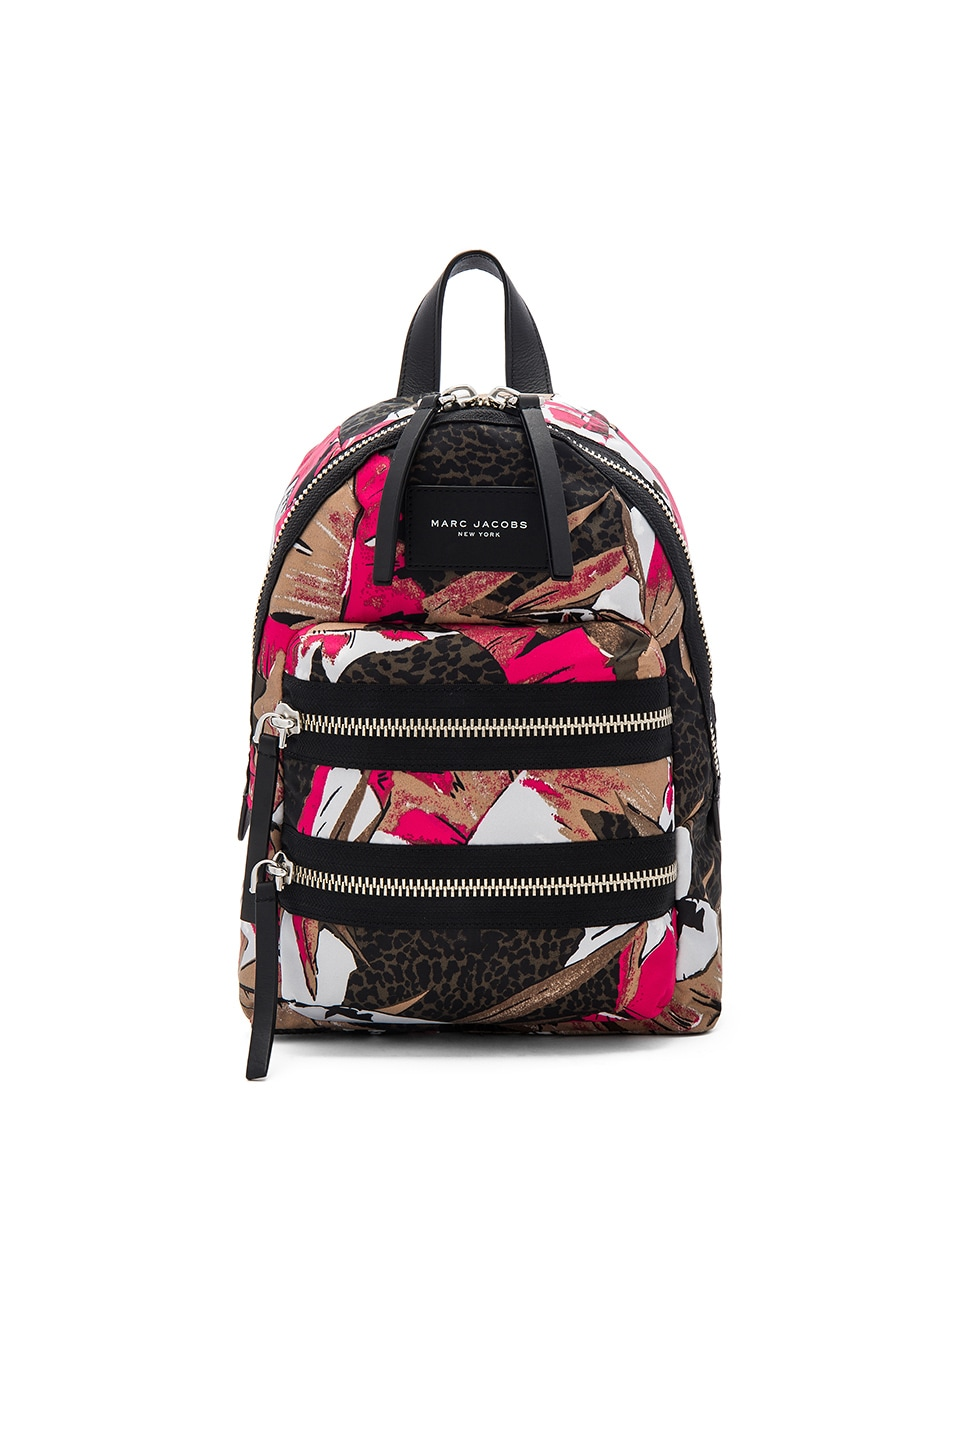 Marc Jacobs Palm Printed Biker Mini Backpack in Pink Multi